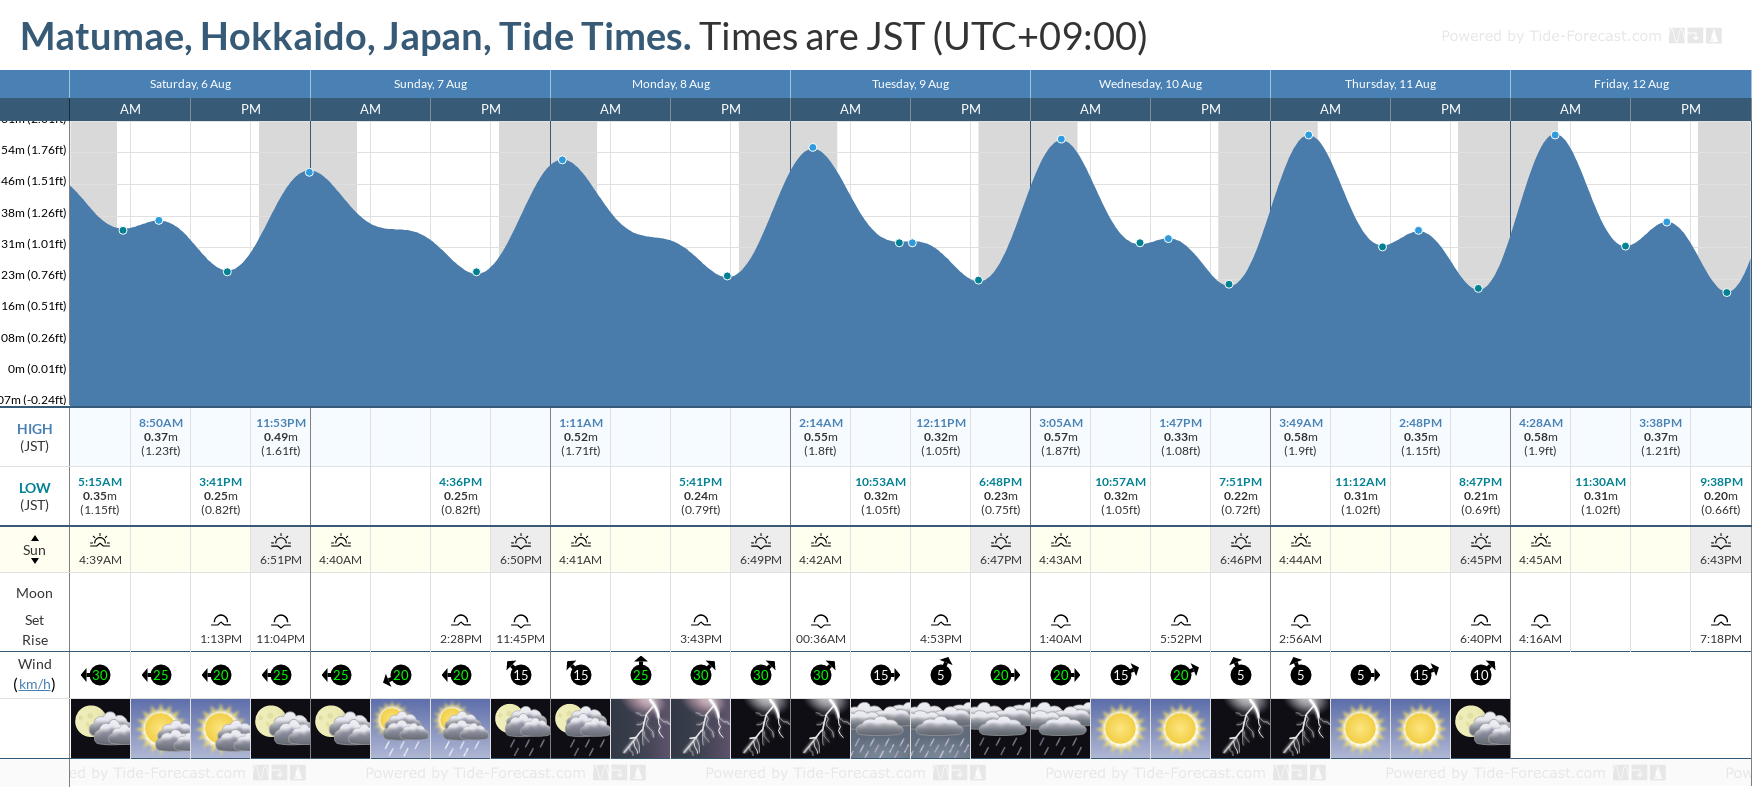 Matumae, Hokkaido, Japan Tide Chart including high and low tide tide times for the next 7 days